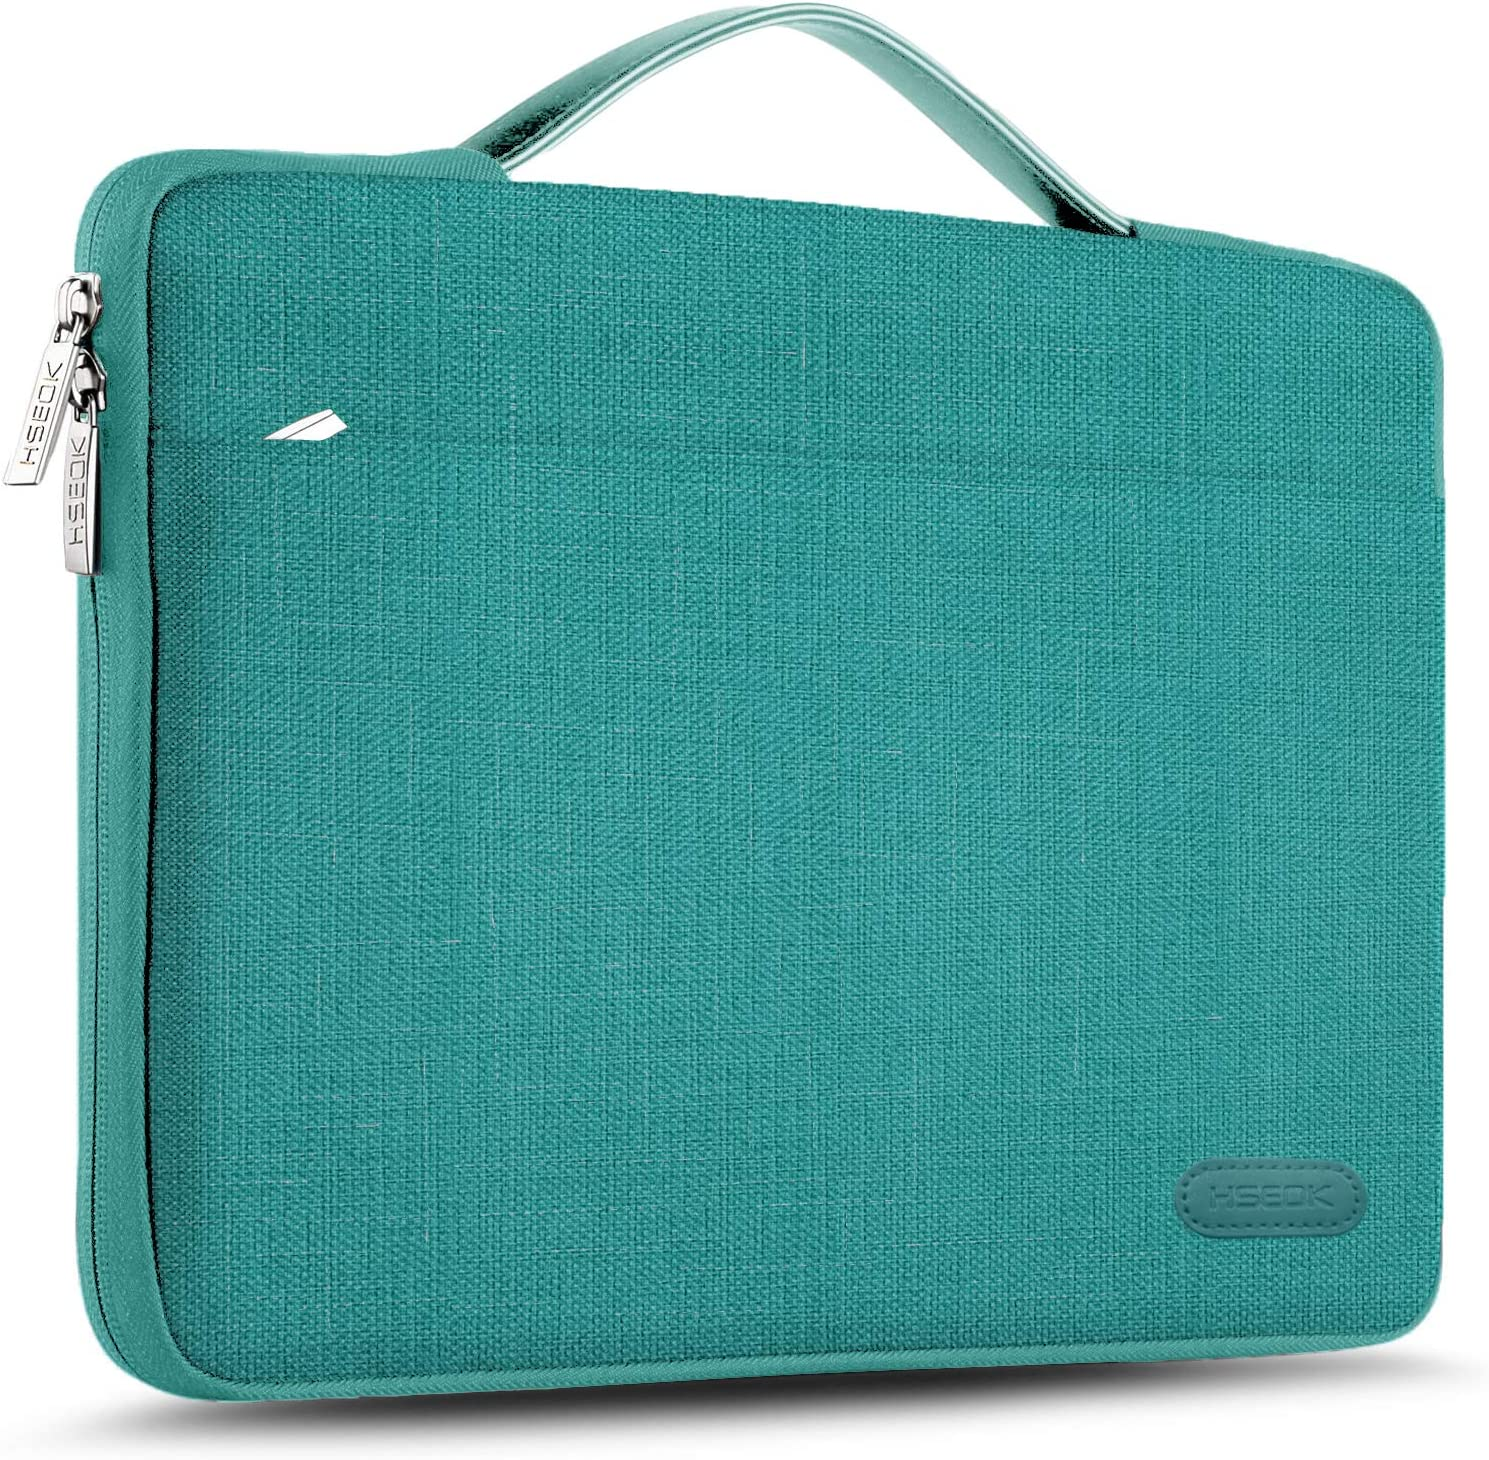 """Hseok Laptop Sleeve 13-13.5 Inch Case Briefcase, Compatible All Model of 13.3 Inch MacBook Air/Pro, XPS 13, Surface Book 13.5"""" Spill-Resistant Handbag for Most Popular 13""""-13.5"""" Notebooks, Linen Blue"""